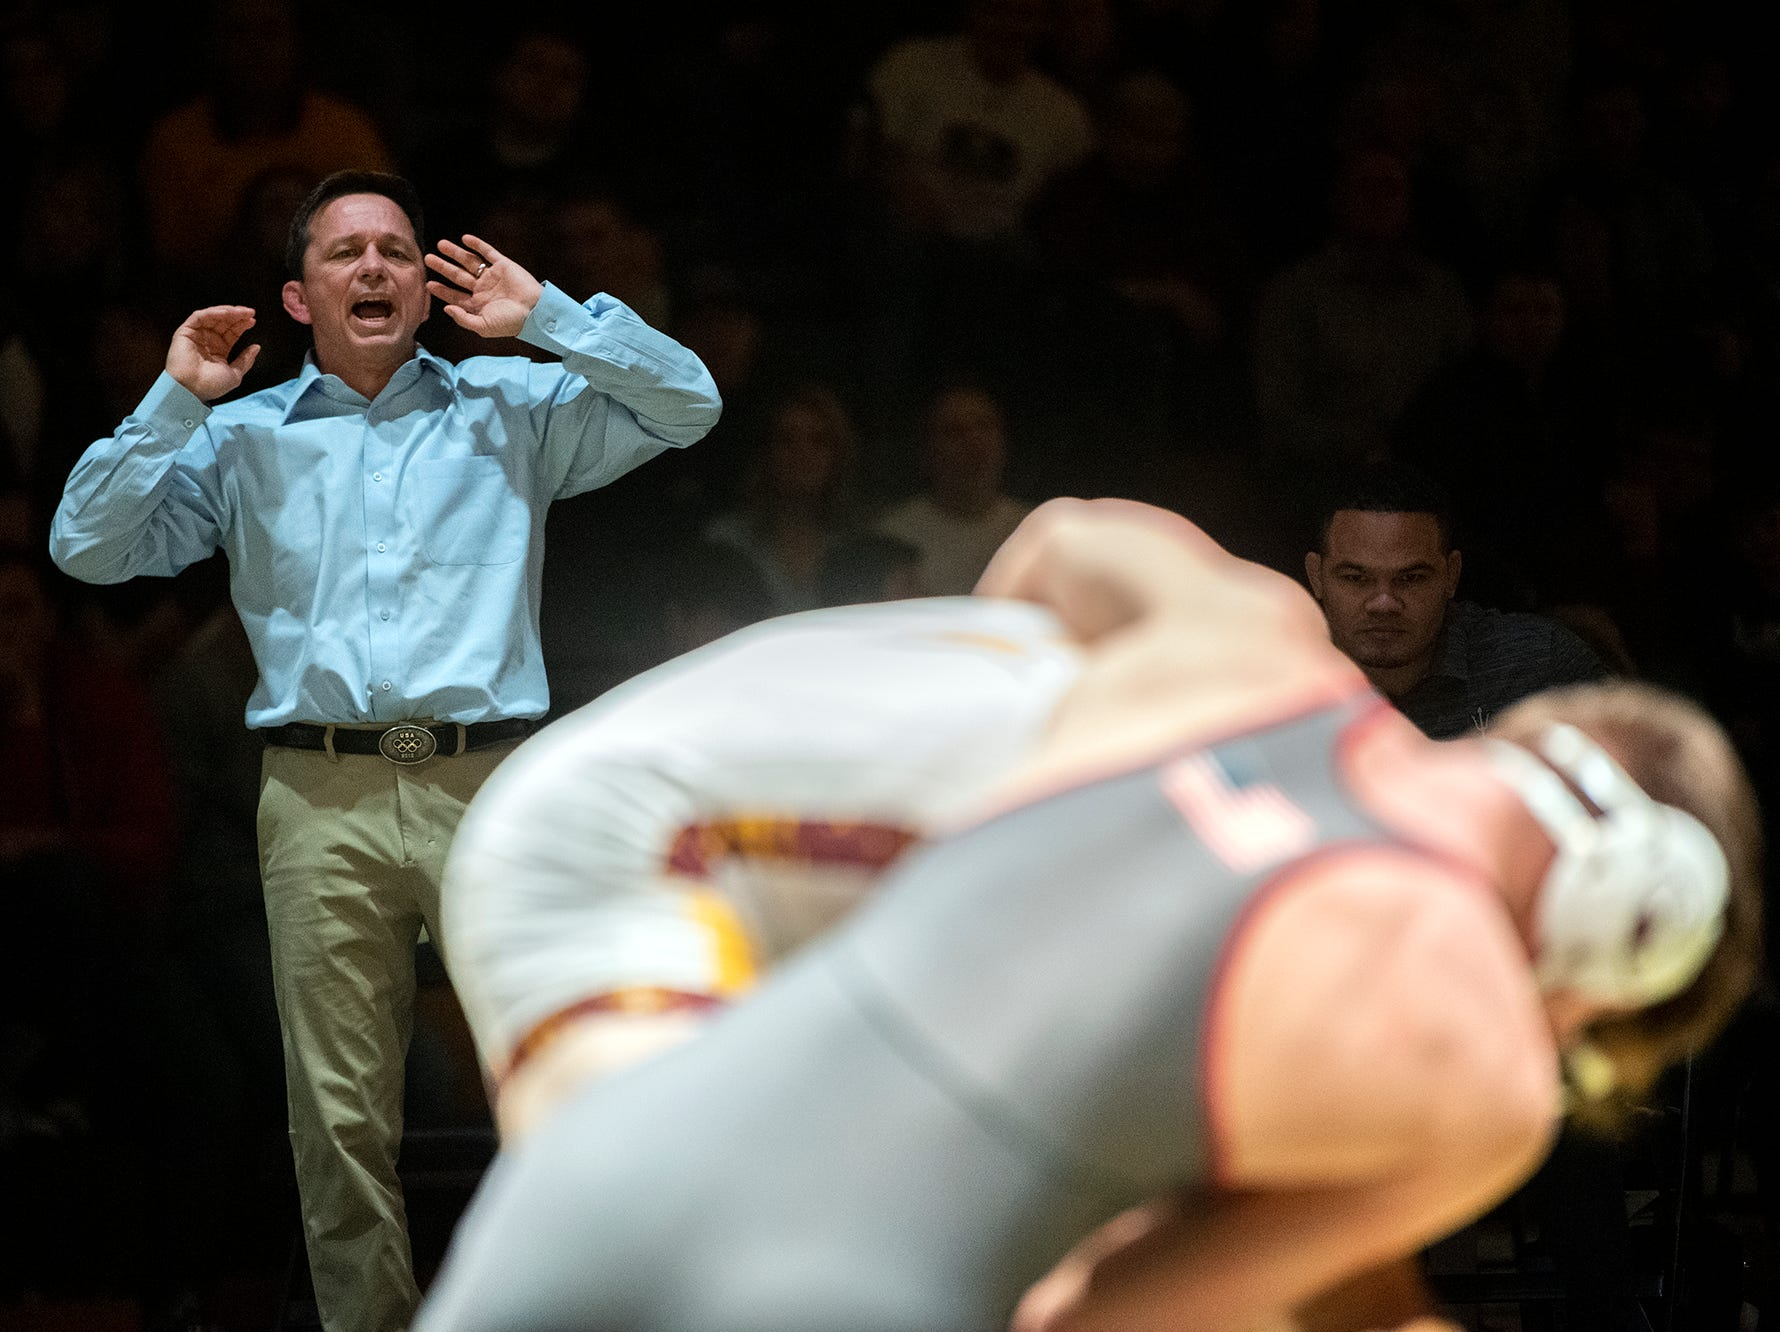 Arizona State head coach Zeke Jones yells out to one of his wrestlers at Red Lion's Fitzkee Athletic Center on Friday, Jan. 25, 2019. No. 22 Lock Haven upset No. 12 Arizona State, 23-14, in the first ever 'Rumble in the Jungle.'